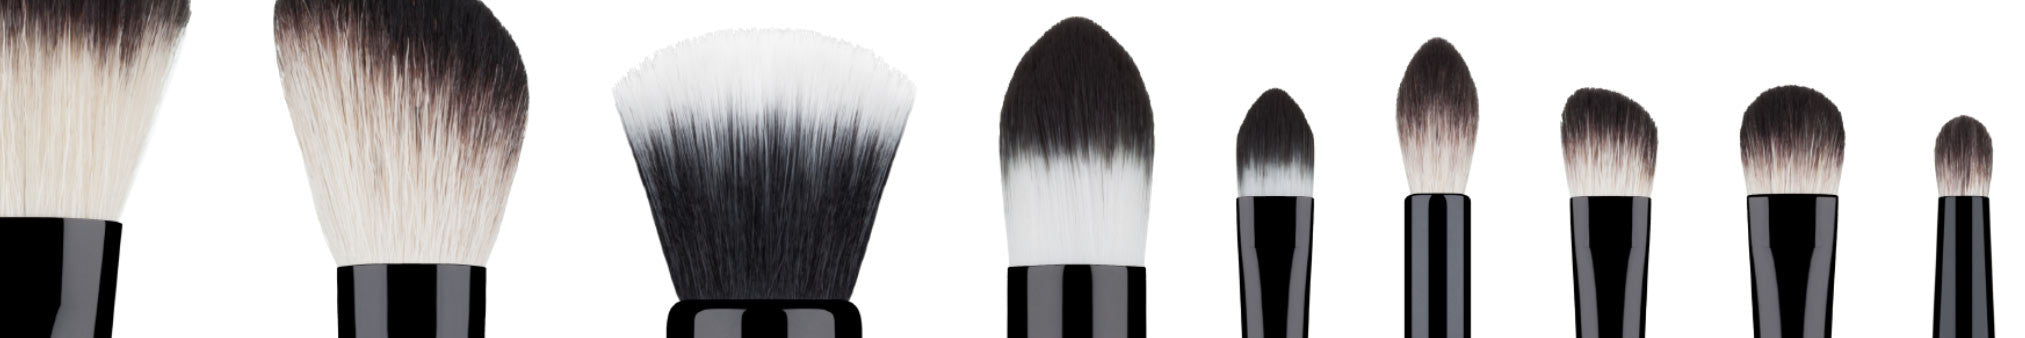 EDDIE FUNKHOUSER Professional Cosmetic Brush Collections